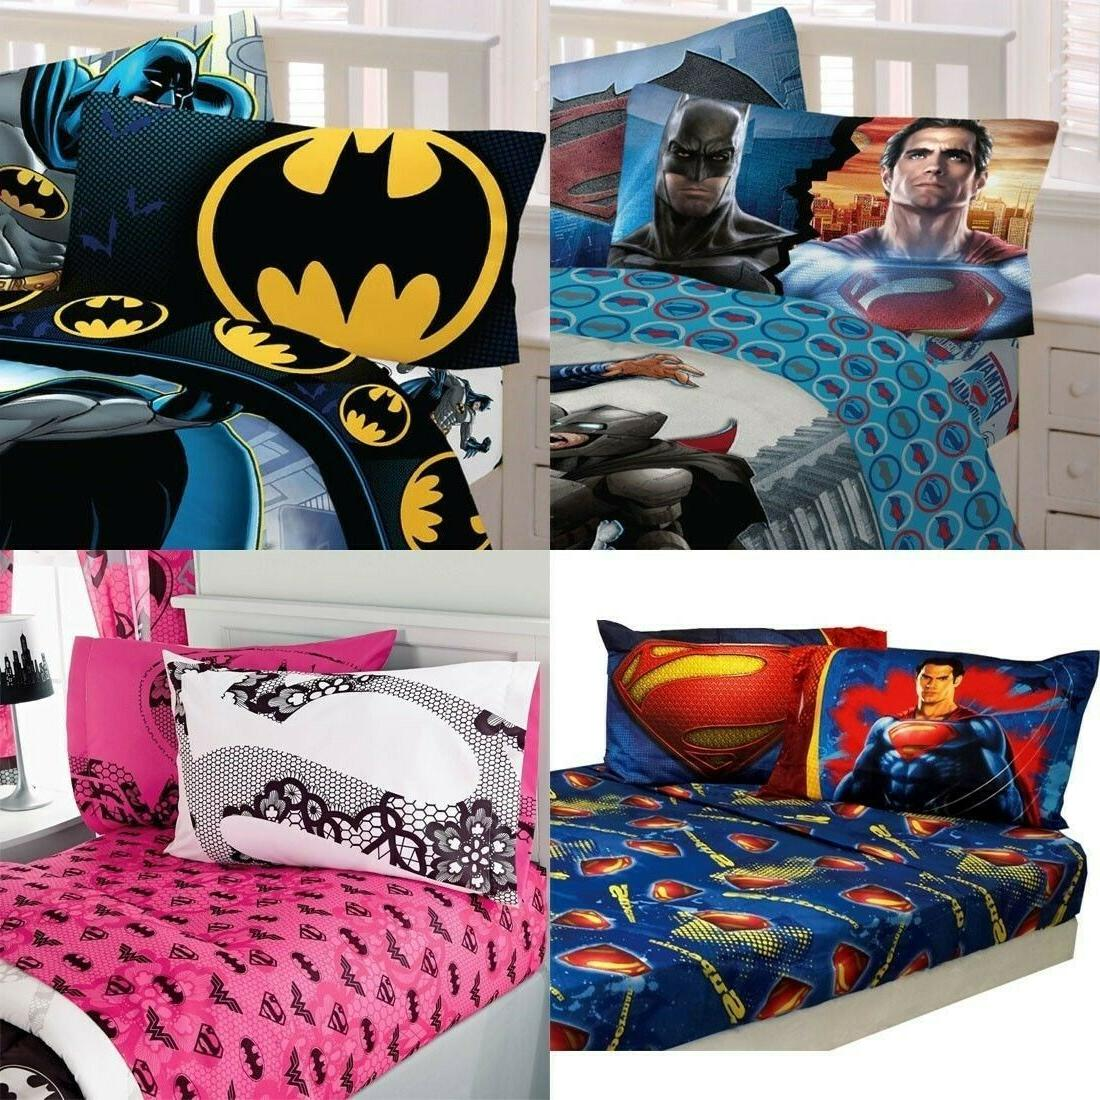 nEw DC COMICS BED SHEETS SET - Batman Justice League Bedding